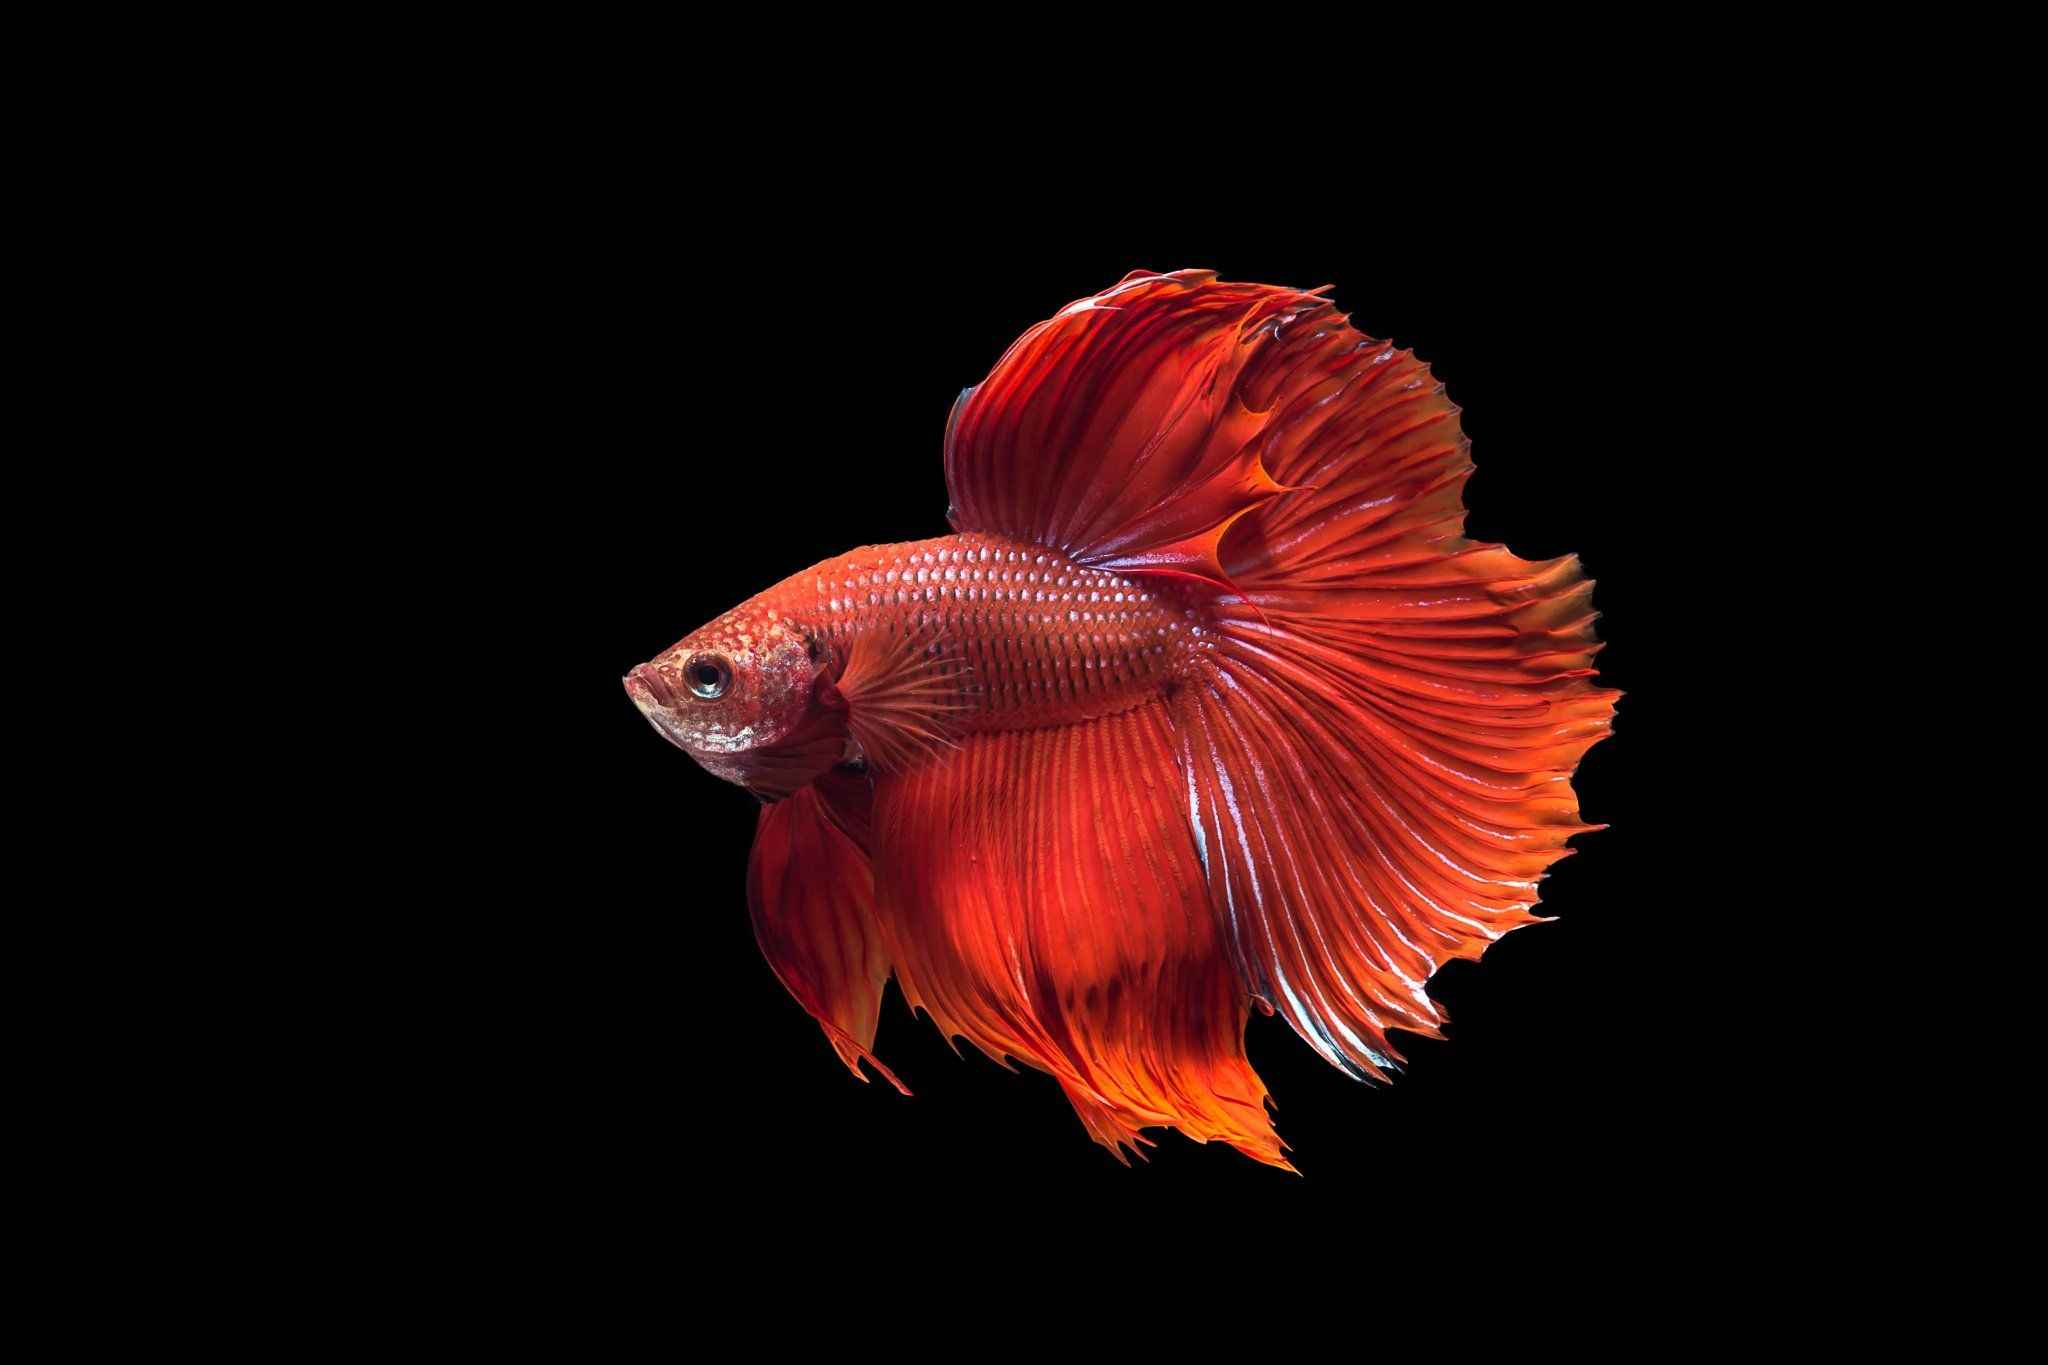 Betta Fish Care Guide: Types, Food, Tank Size, Breeding Tips, and More